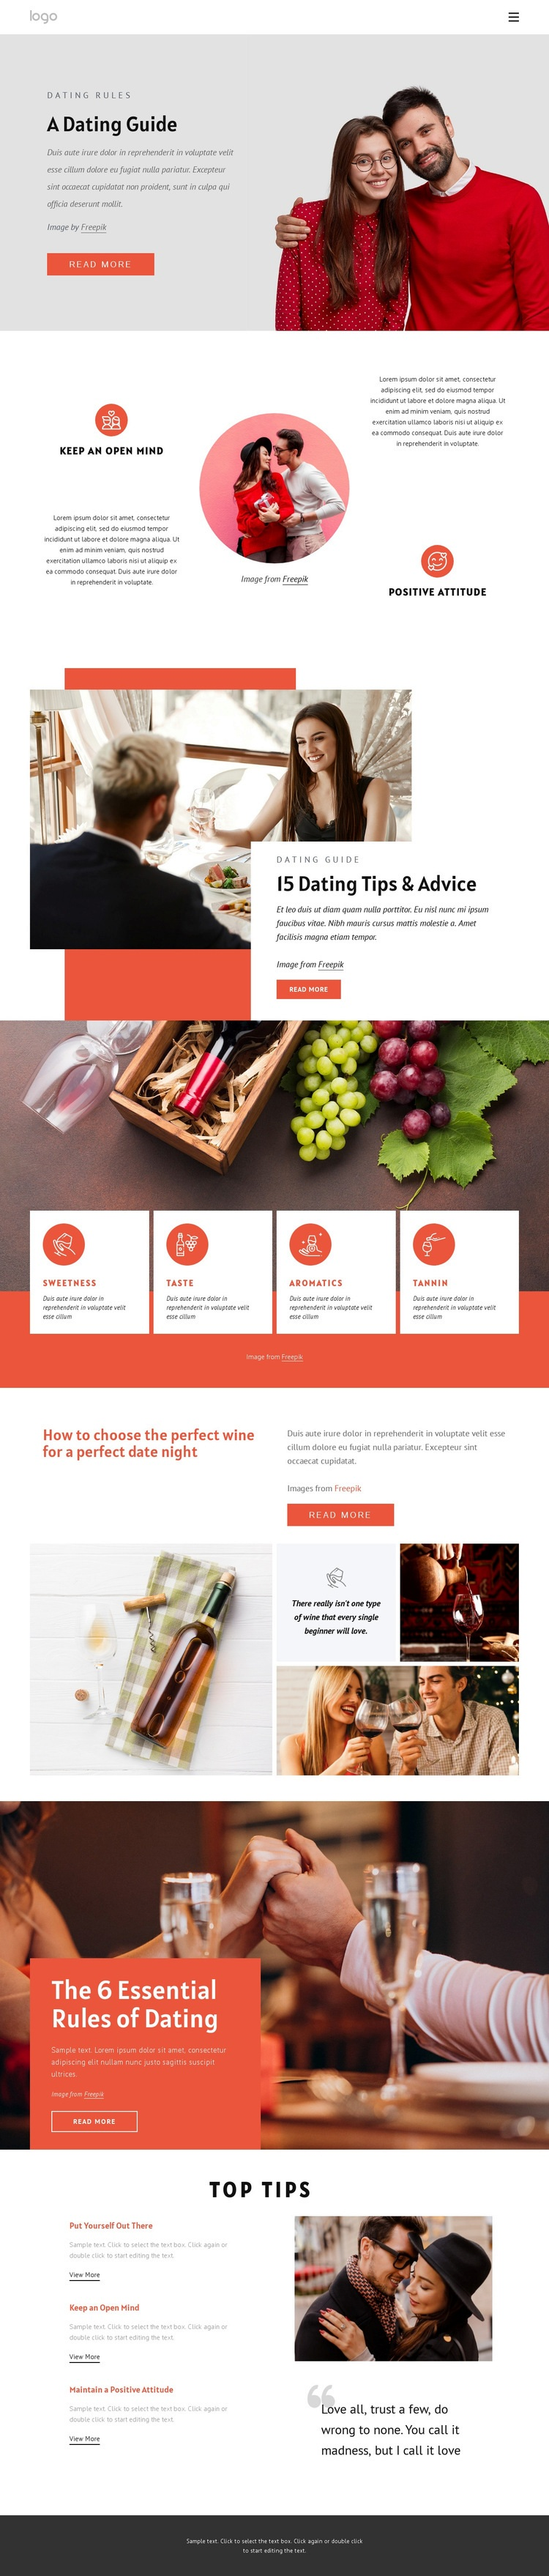 Dating guide Web Page Designer